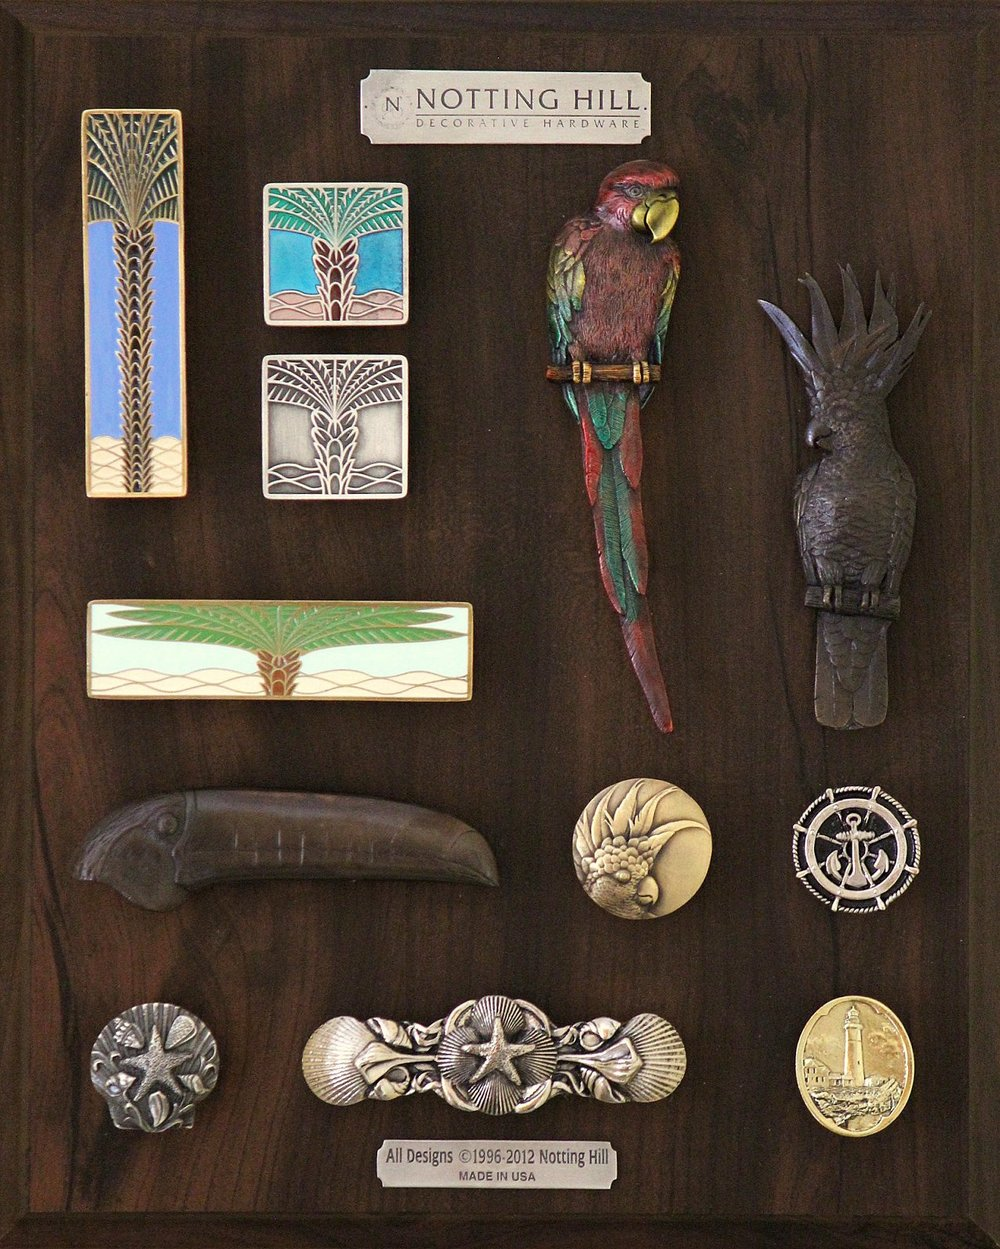 Royal Palm Pull (vertical), 2 Knobs, Royal Palm Pull (horizontal); Macaw Pull (L), Cockatoo Pull (R), Toucan Pull (L), Small Toucan Knob (L); Ship's Wheel Knob, Seaside Collage Knob, Pull; Guiding Lighthouse Knob.